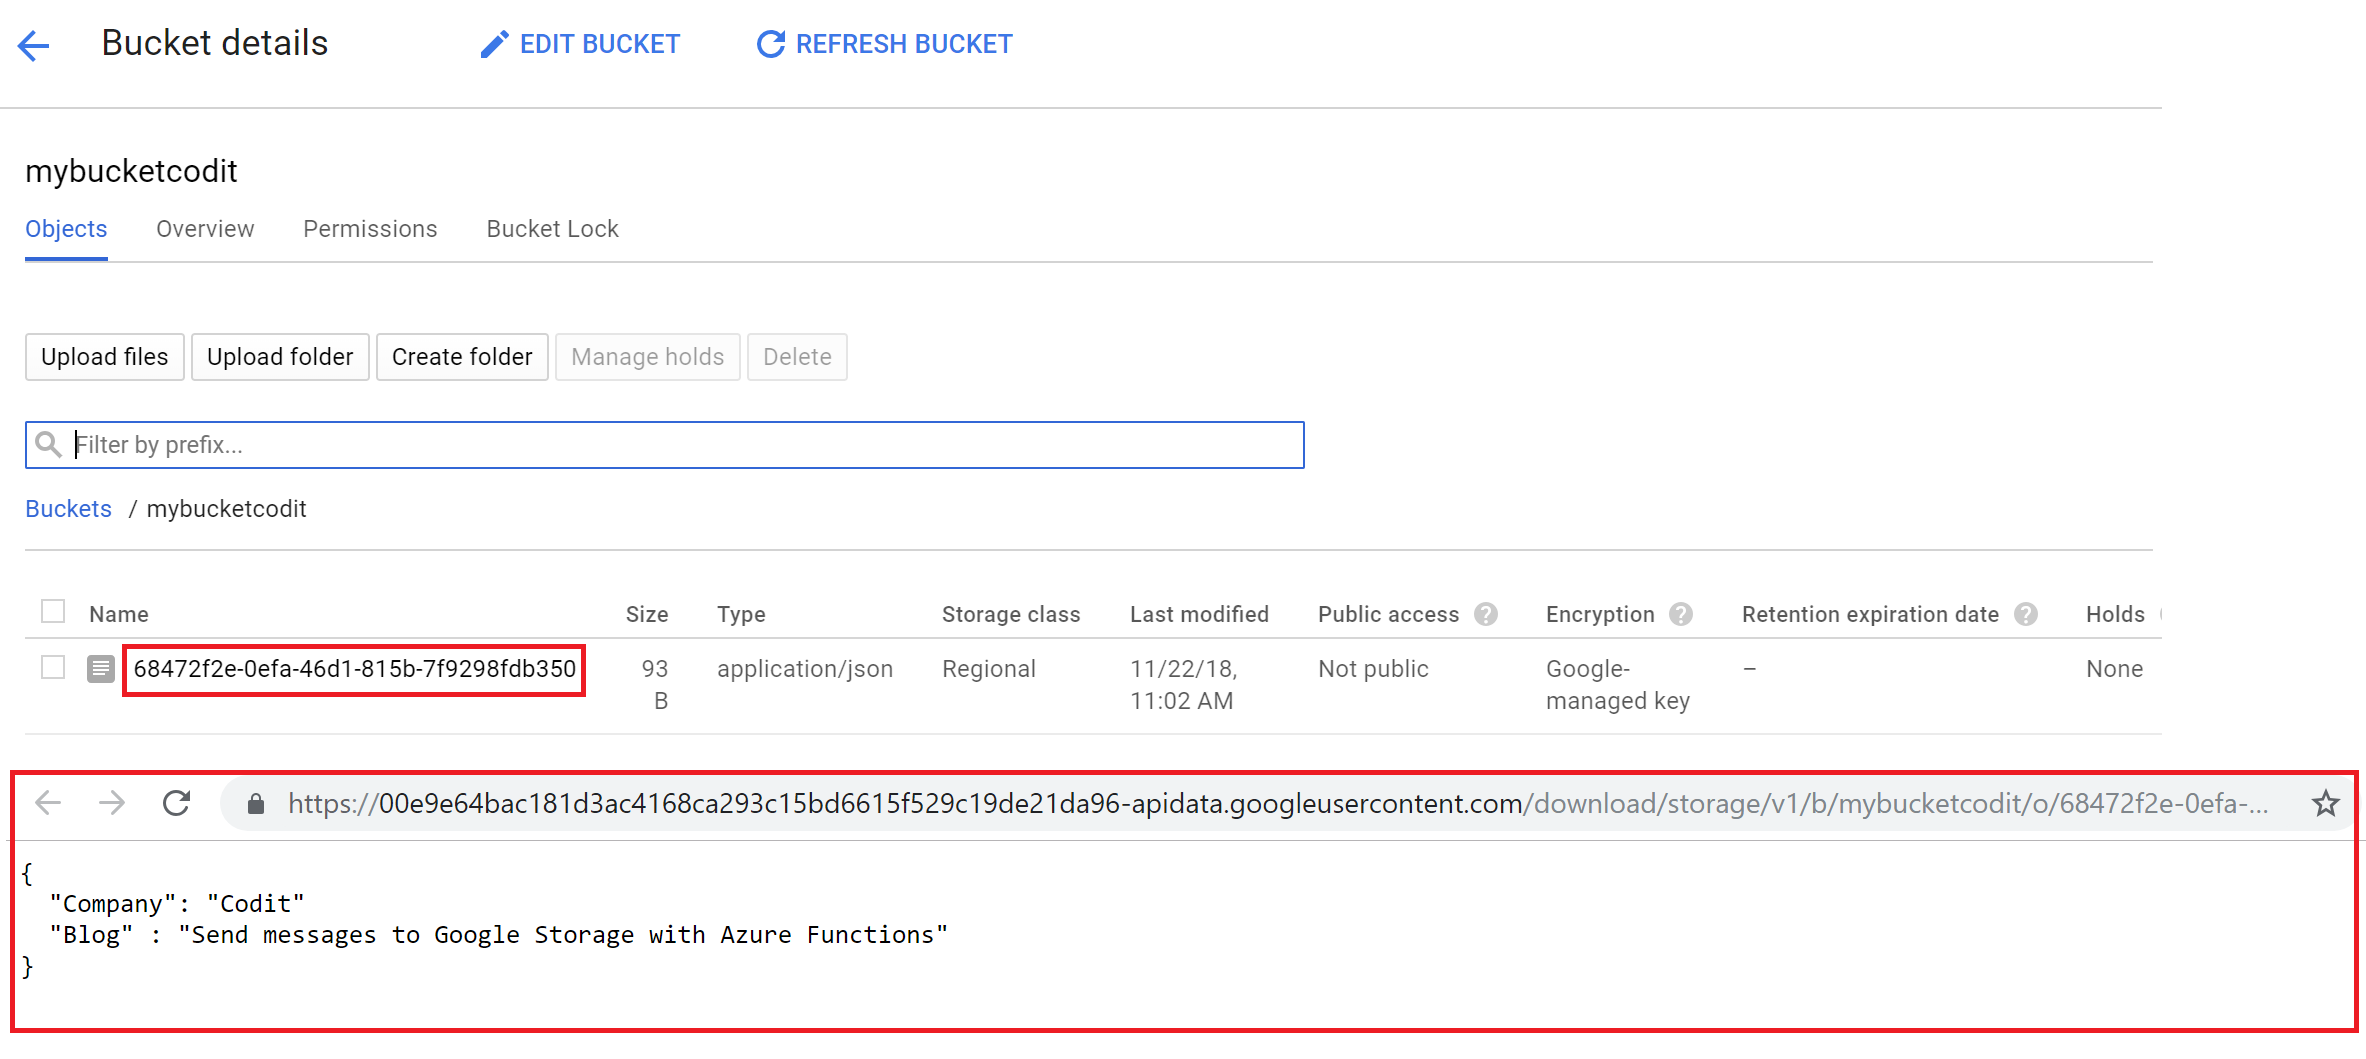 Send Messages to Google Storage with Azure Functions | Codit